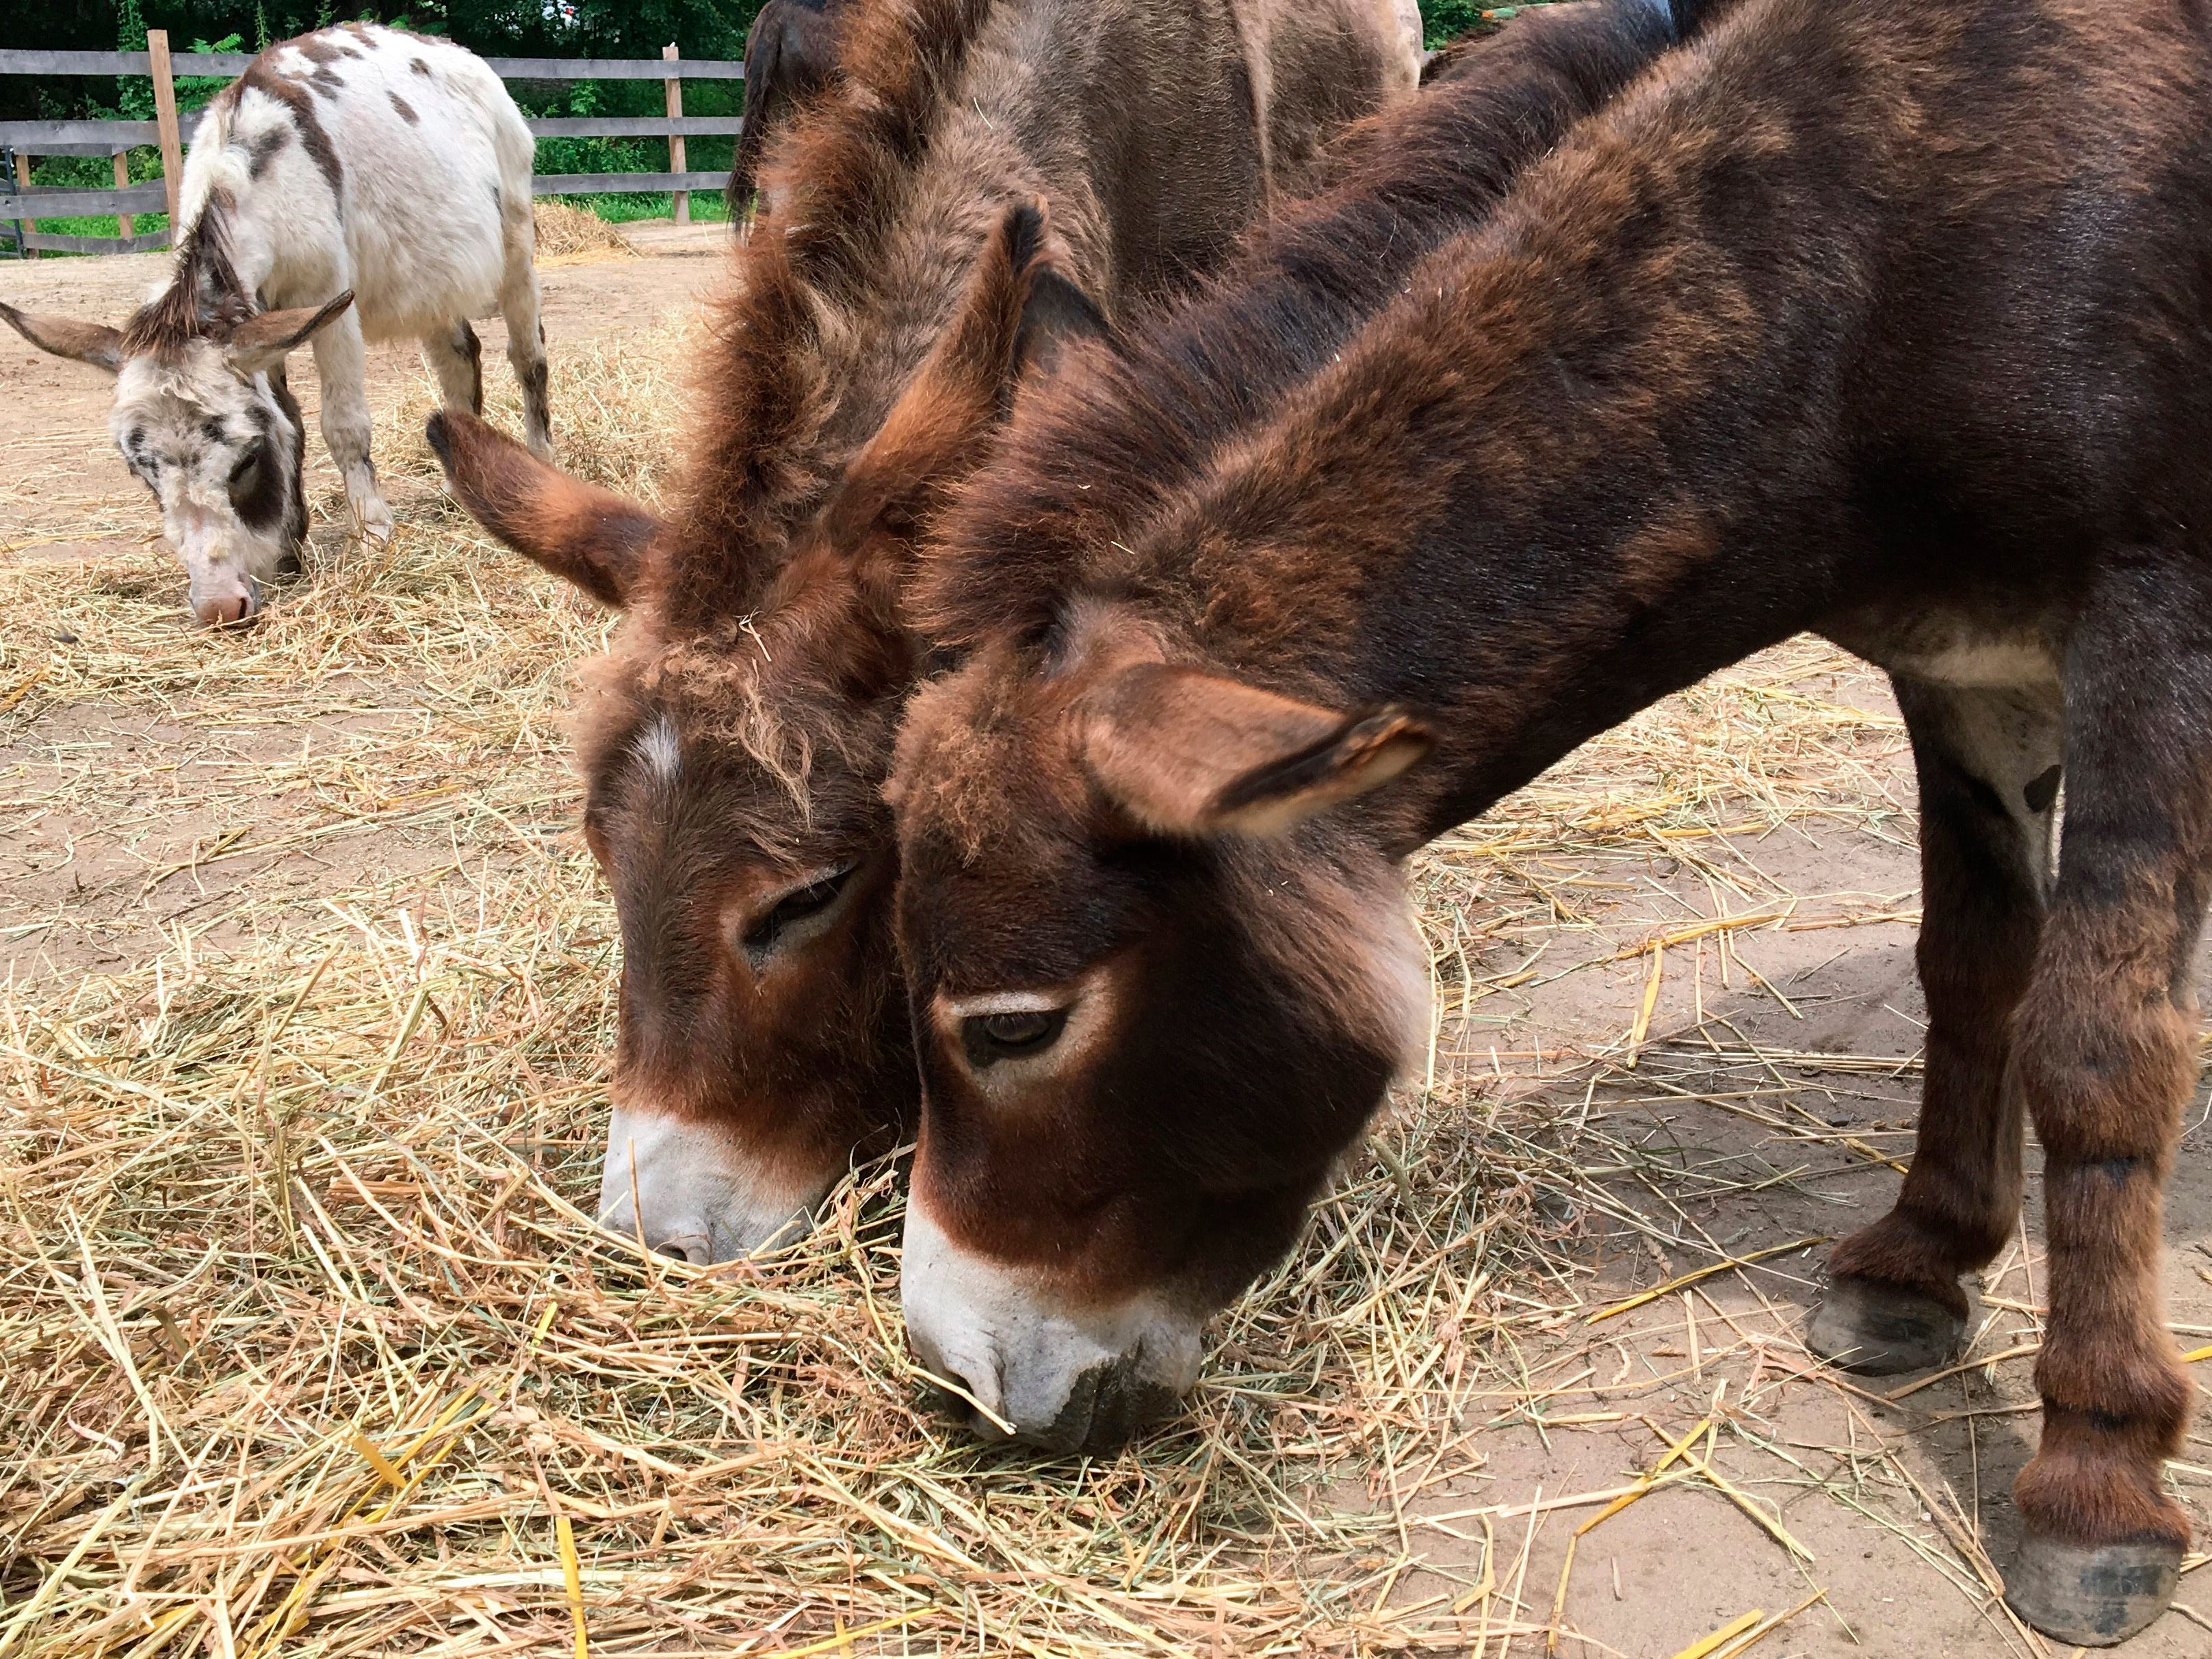 In this July 30 photo, miniature donkeys eat hay at Donkey Park in Ulster Park.